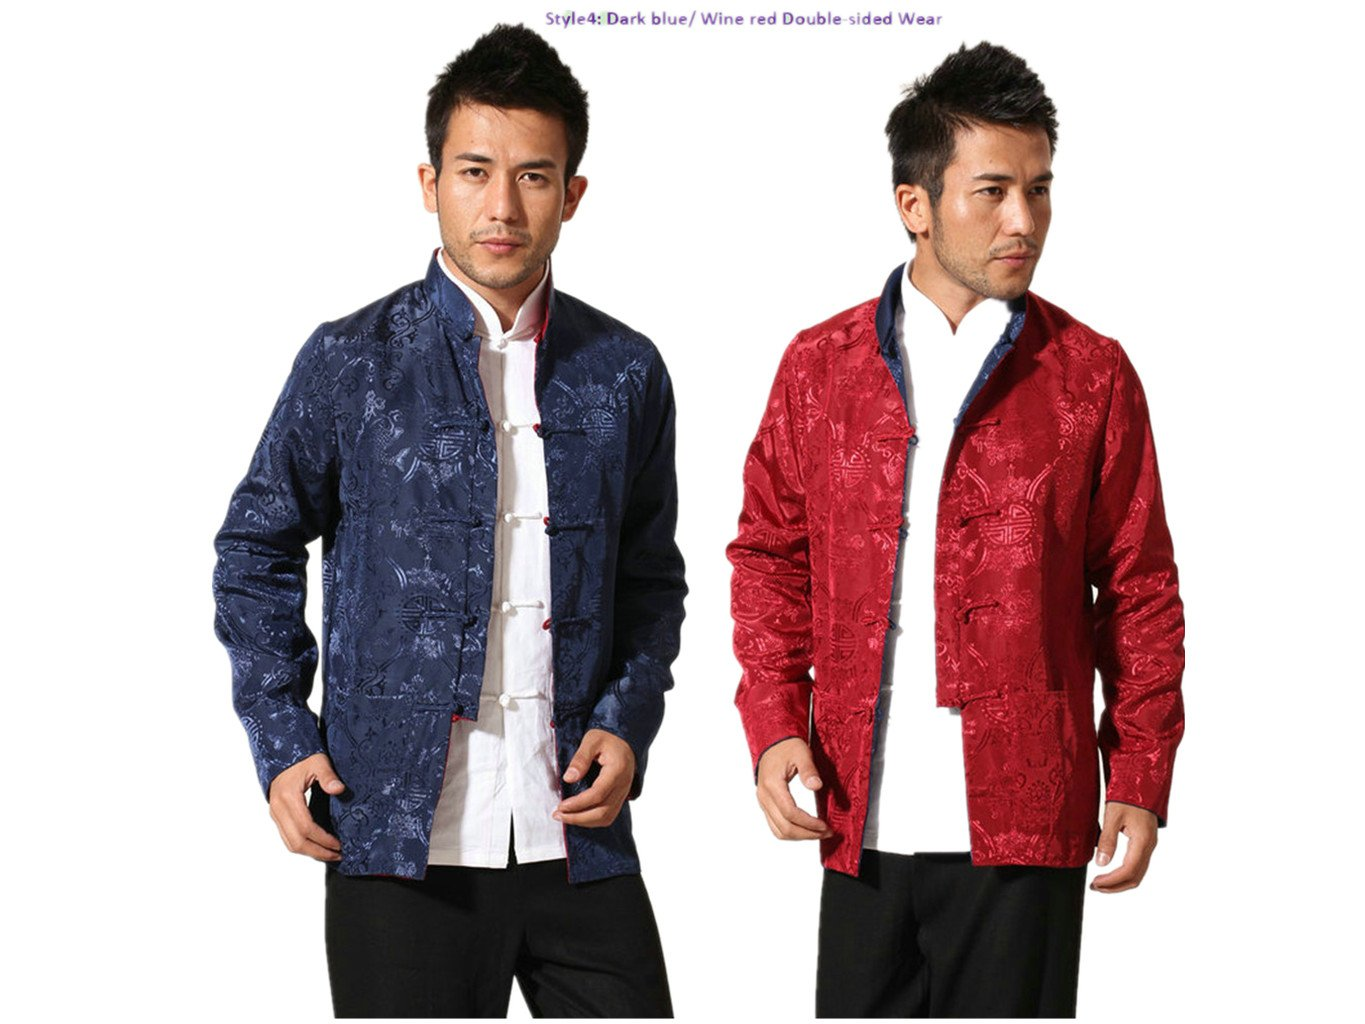 Brocade Silk Tang Suits Double-sided Wear Retro Jackets Coats Business Jackets Full Dress